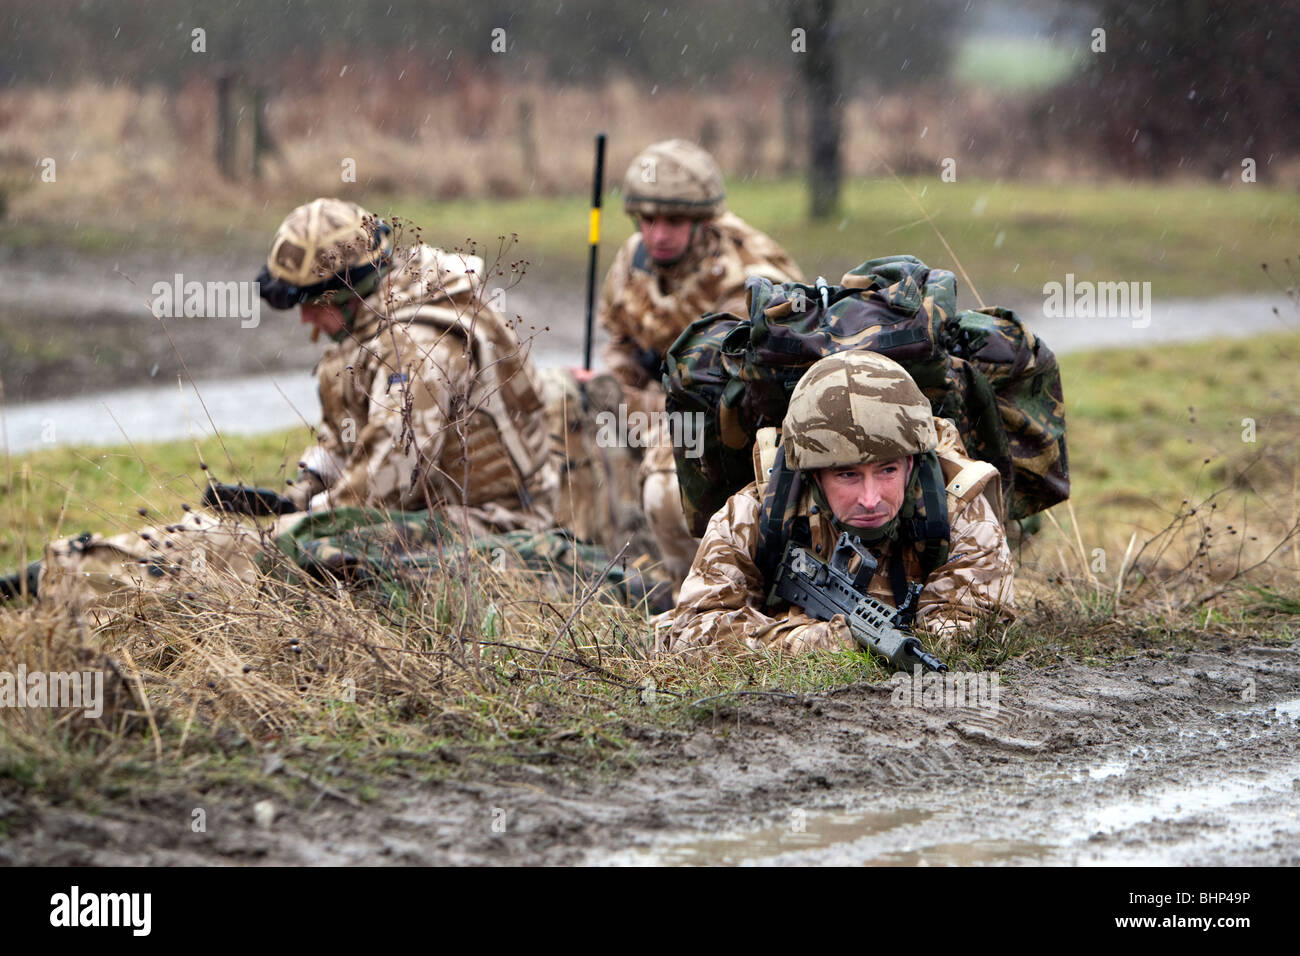 British soldiers wearing desert camouflage uniforms in training for deployment to Afghanistan prepare to destroy - Stock Image